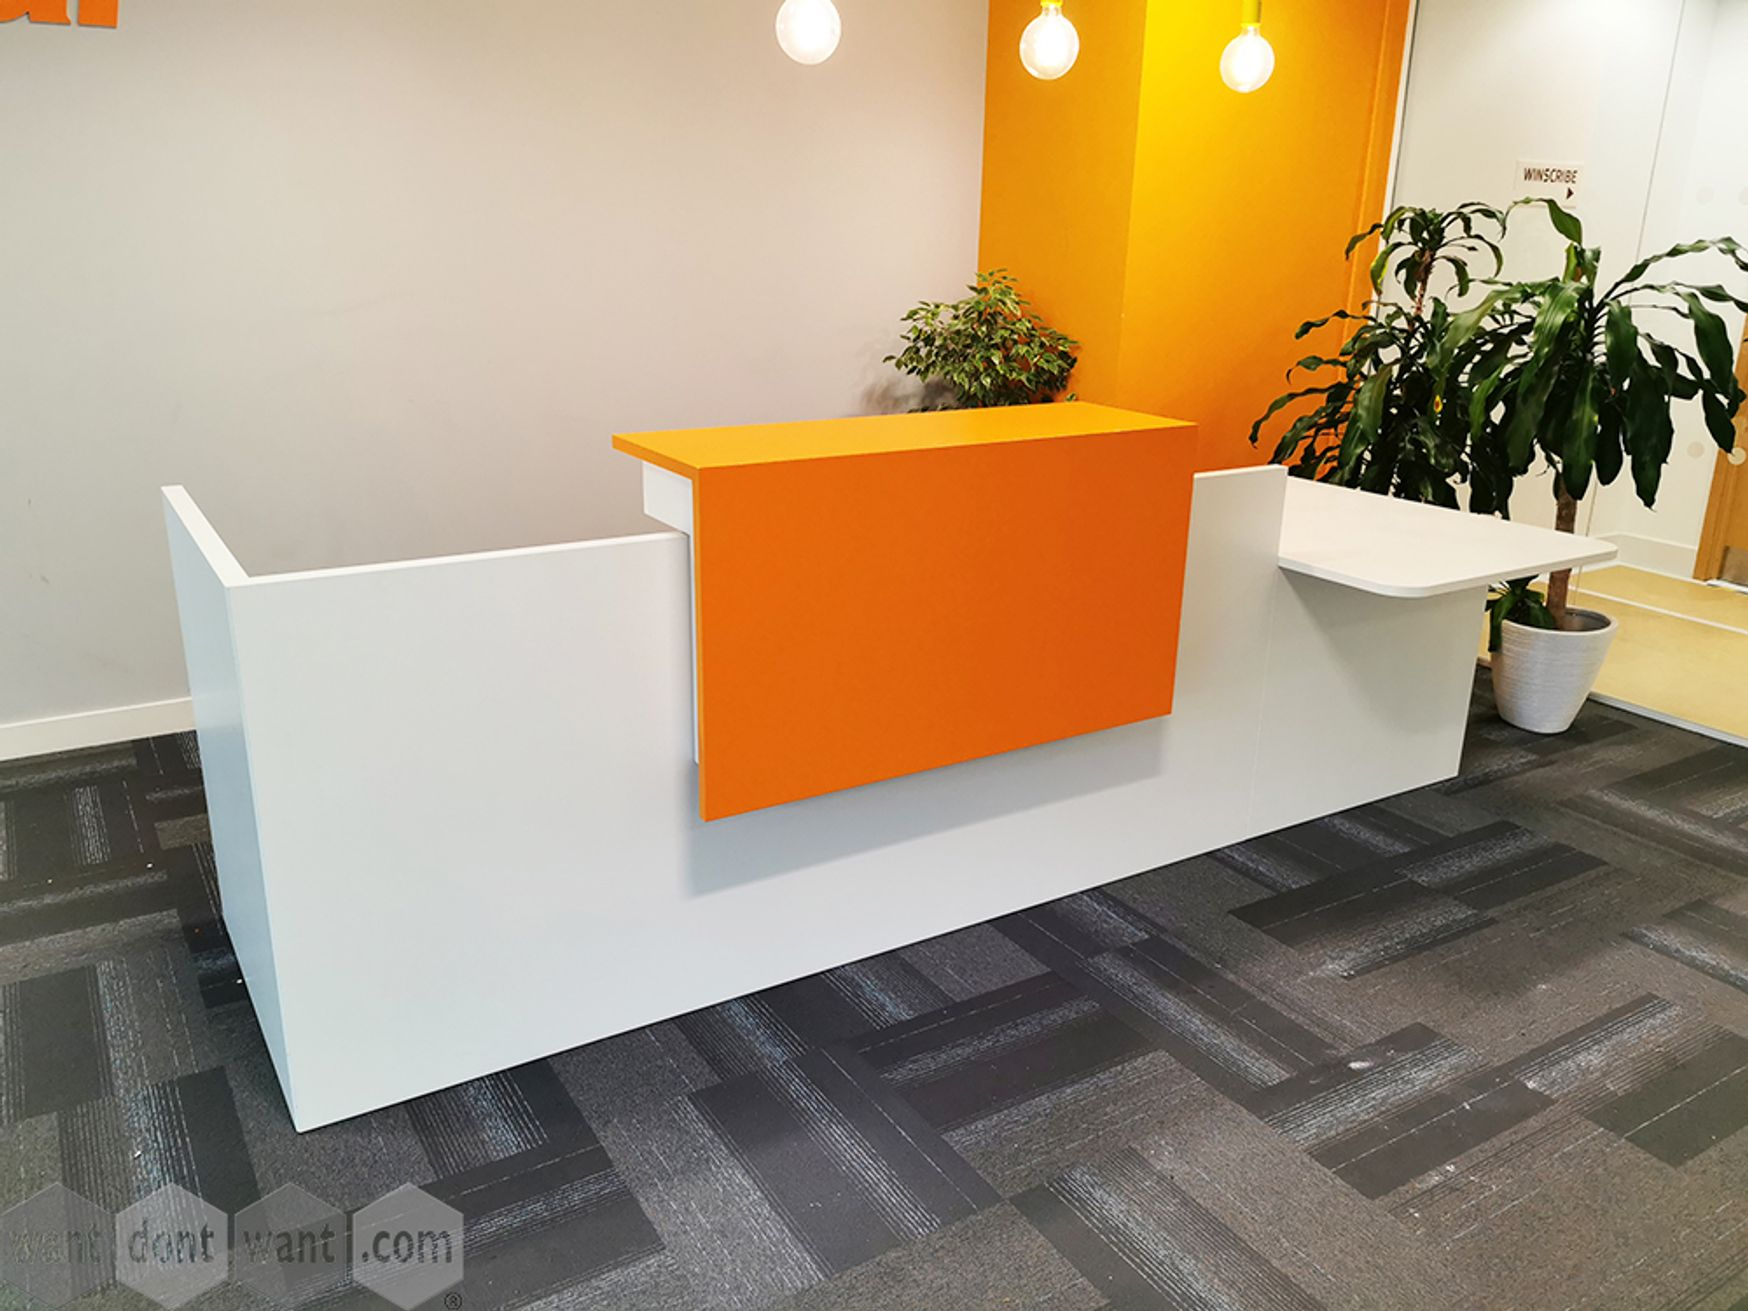 Used White Reception Desk with Orange Panel Shelf